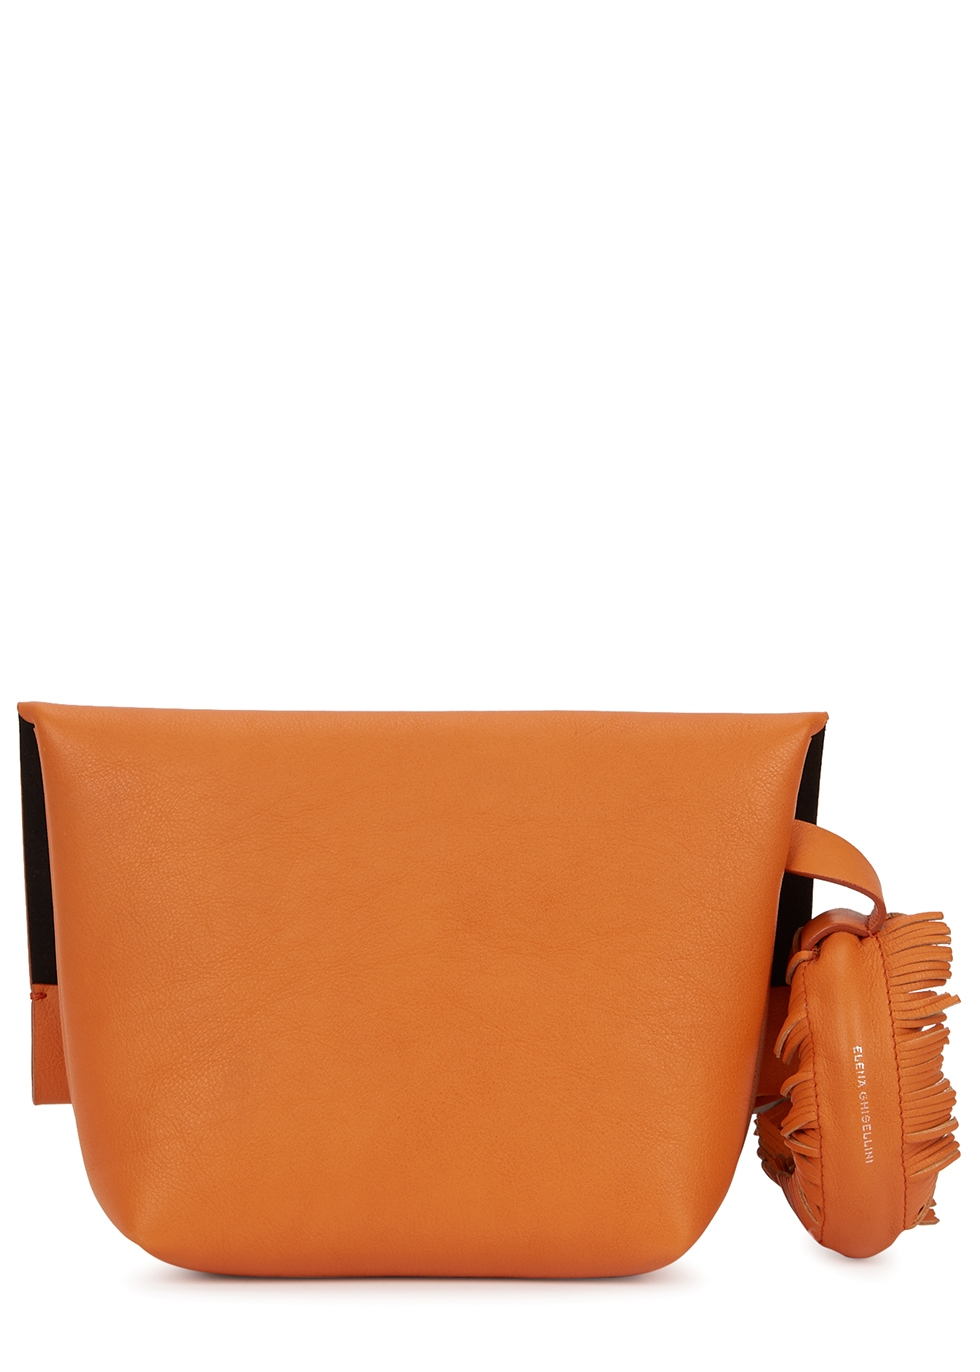 Bunny Touch orange leather clutch - Elena Ghisellini